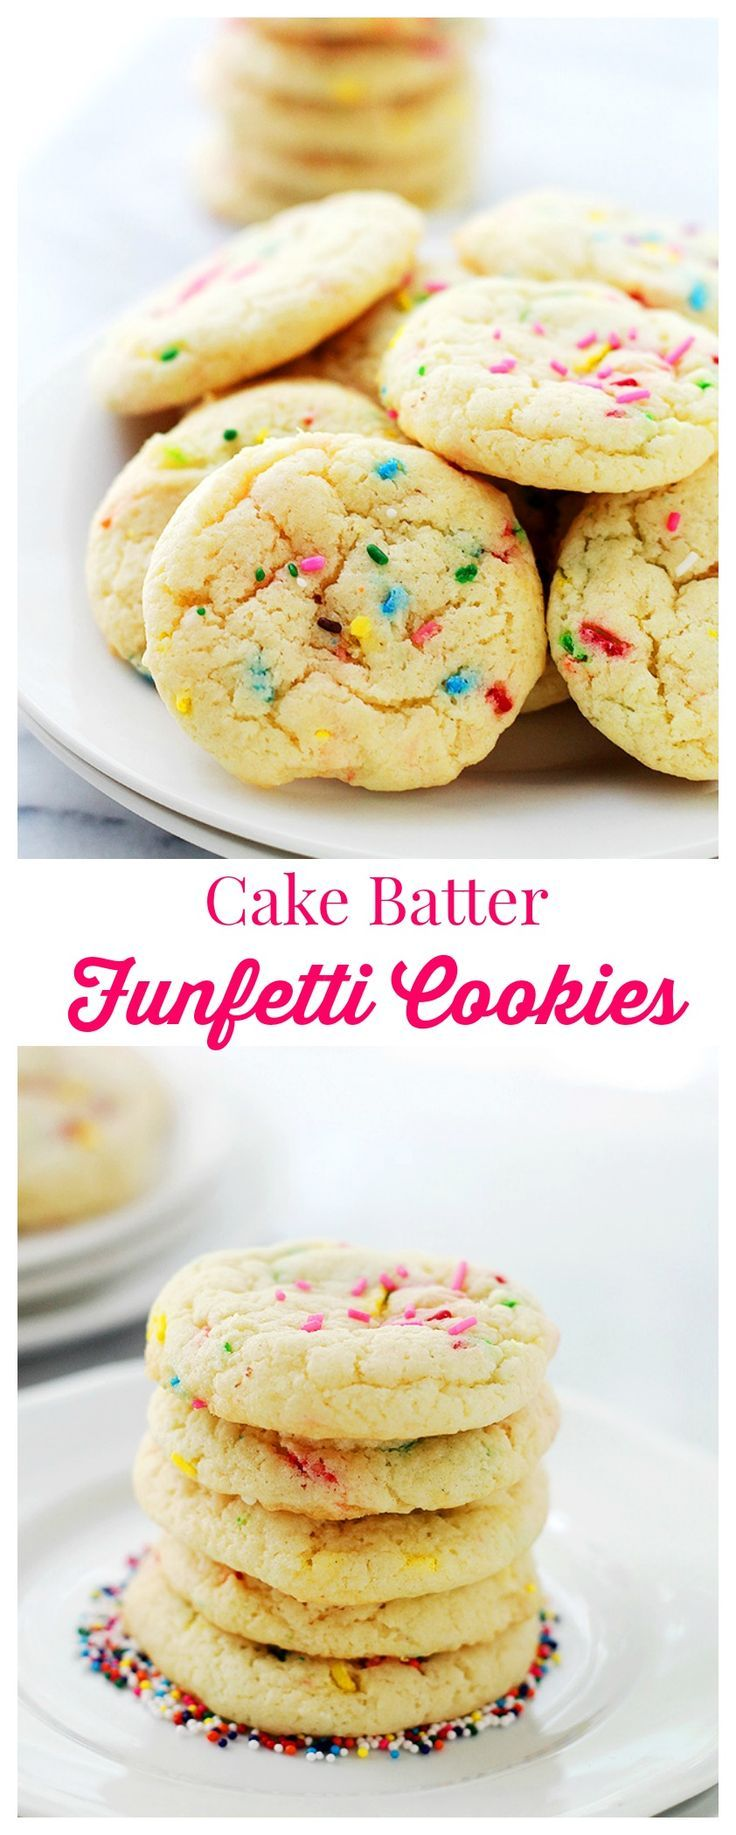 Cake Batter Funfetti Cookies | www.diethood.com | Soft, perfectly fluffy cookies made with a cake mix and sprinkles! | #cookies #food #recipes